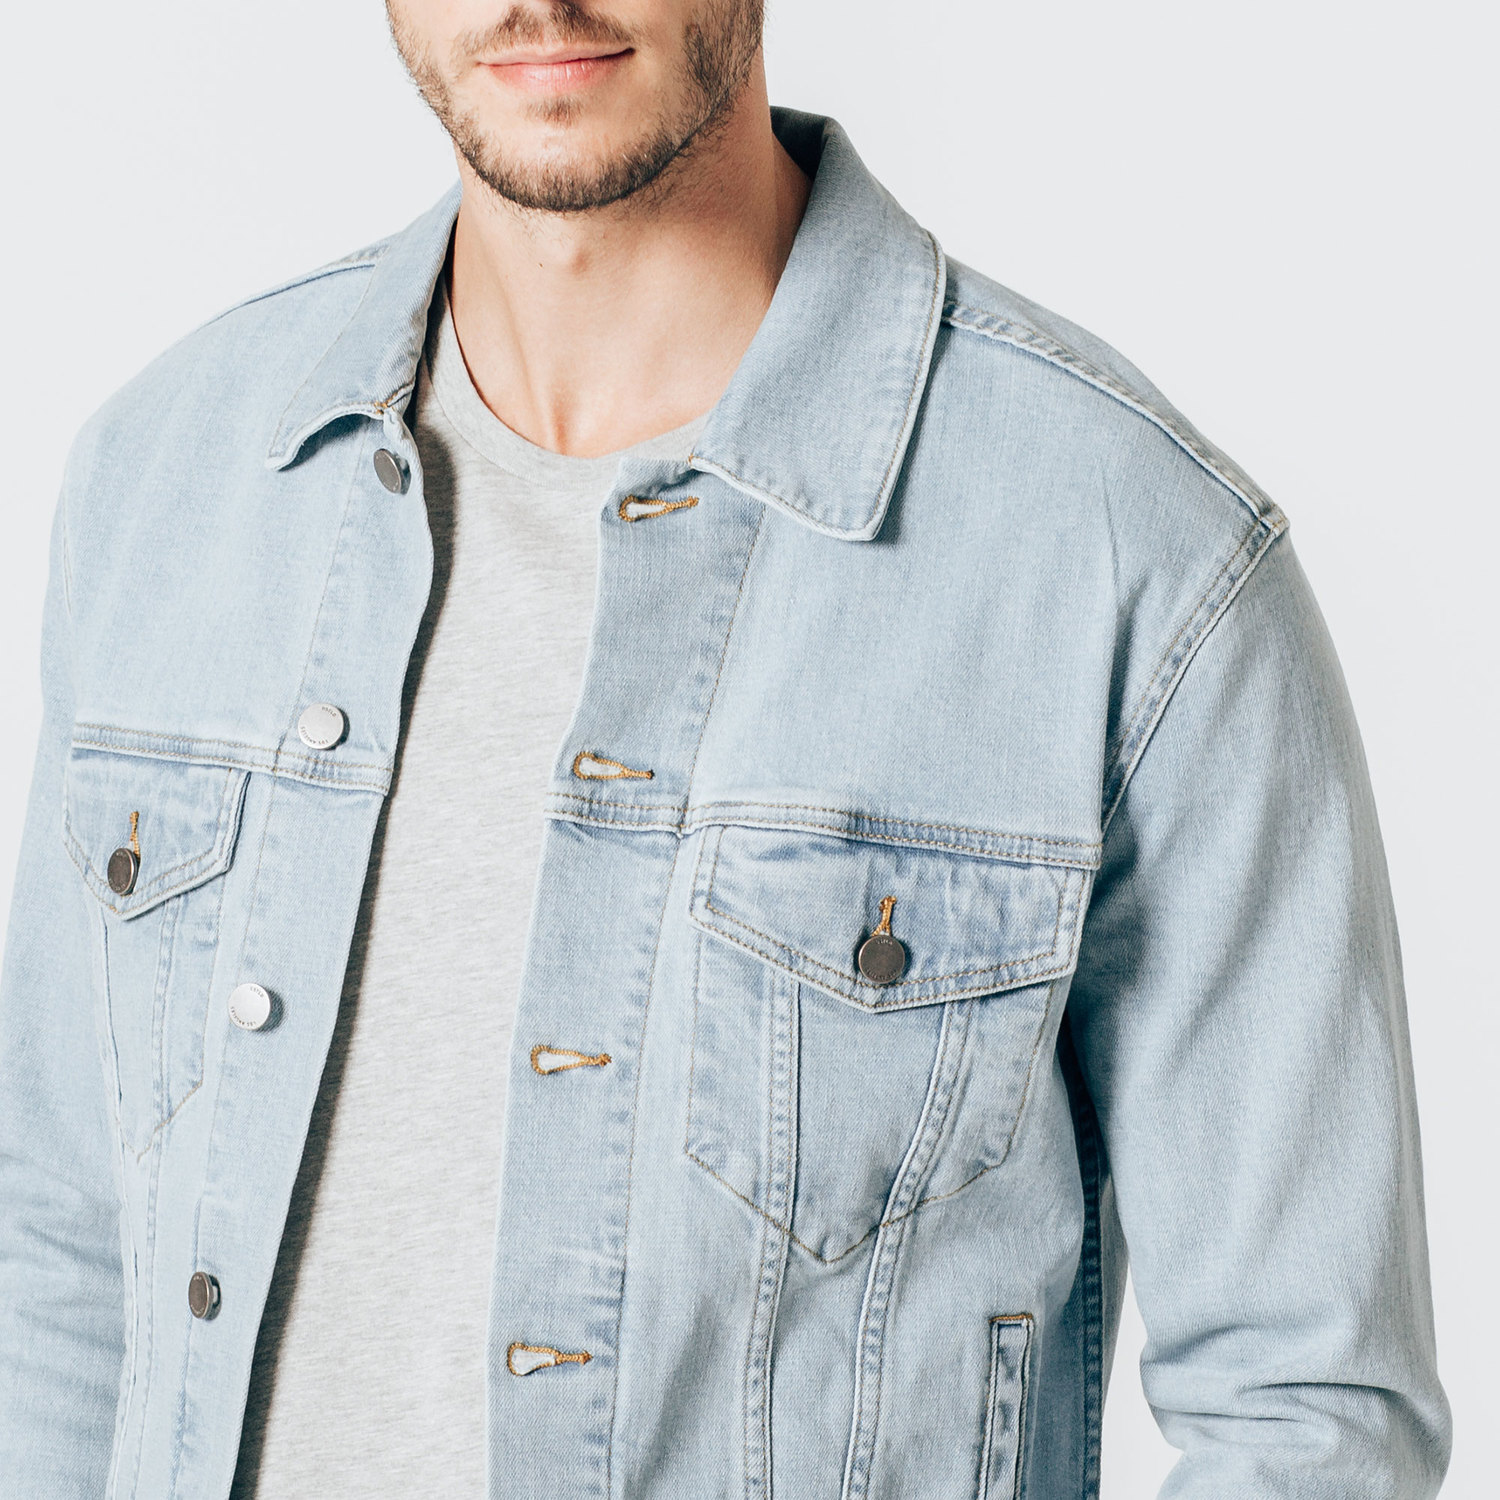 d8b3e3bf386 Mens Denim Jacket In Light Wash  95